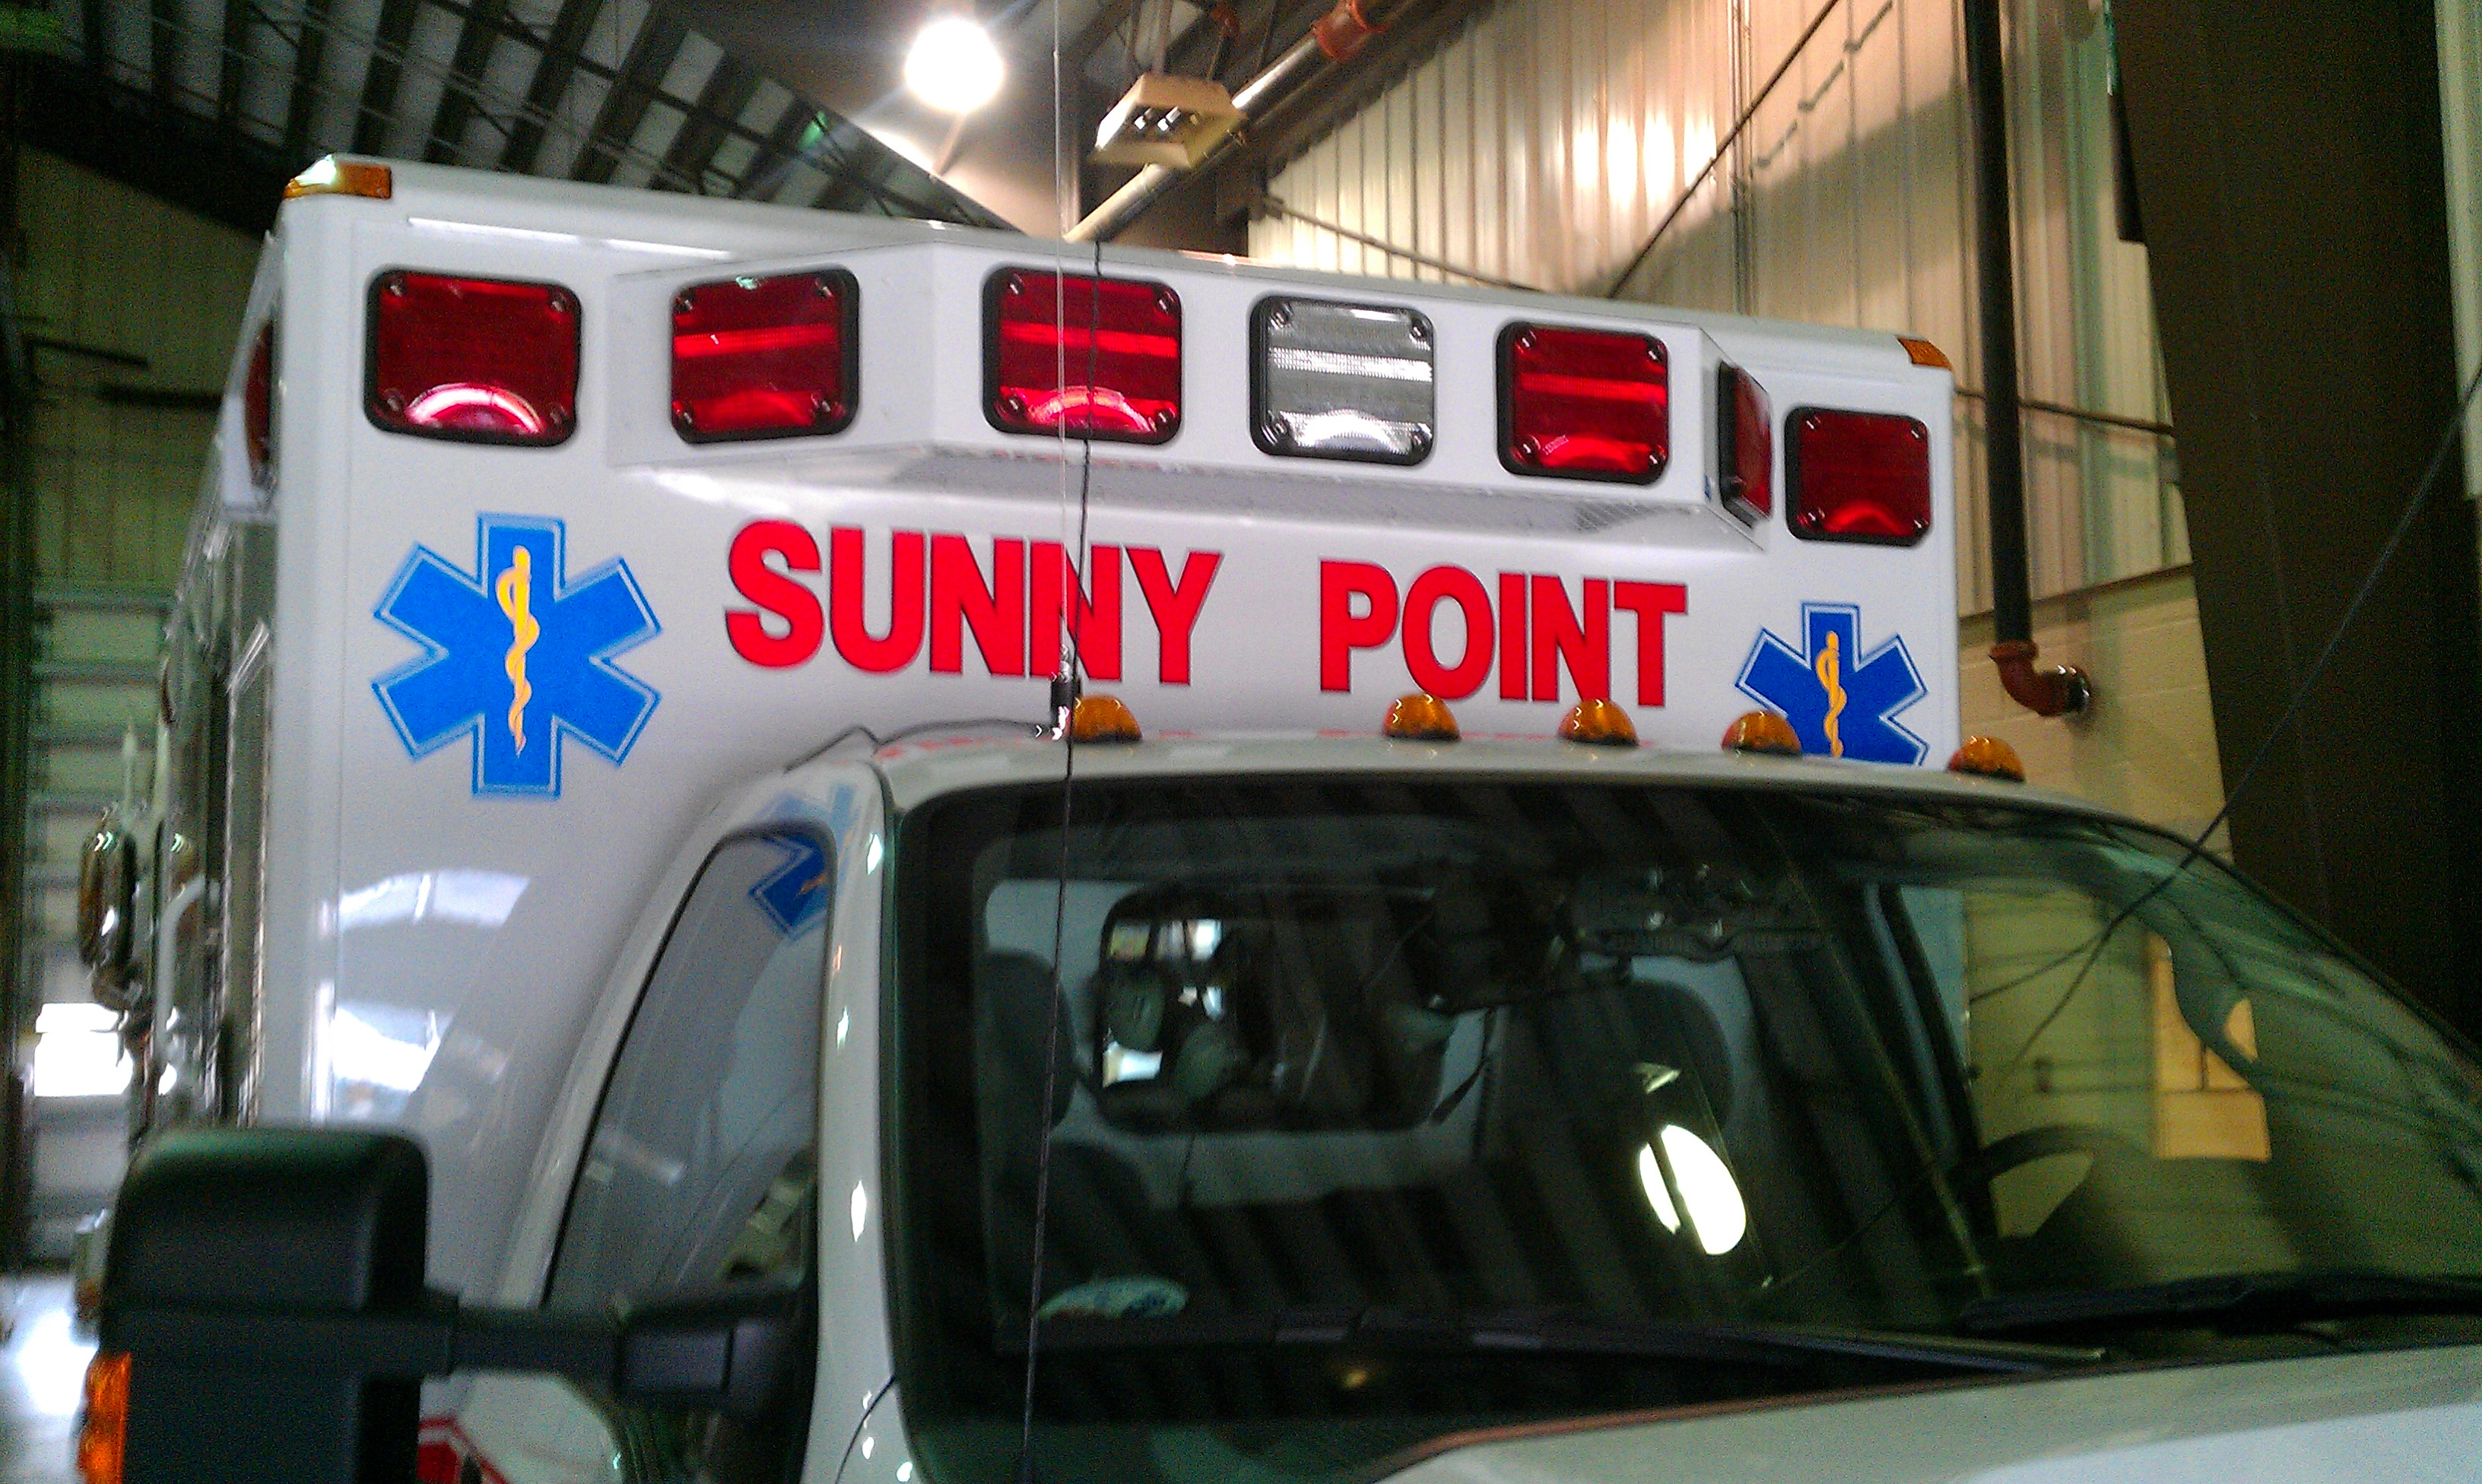 Sunny Point Ambulance Decal